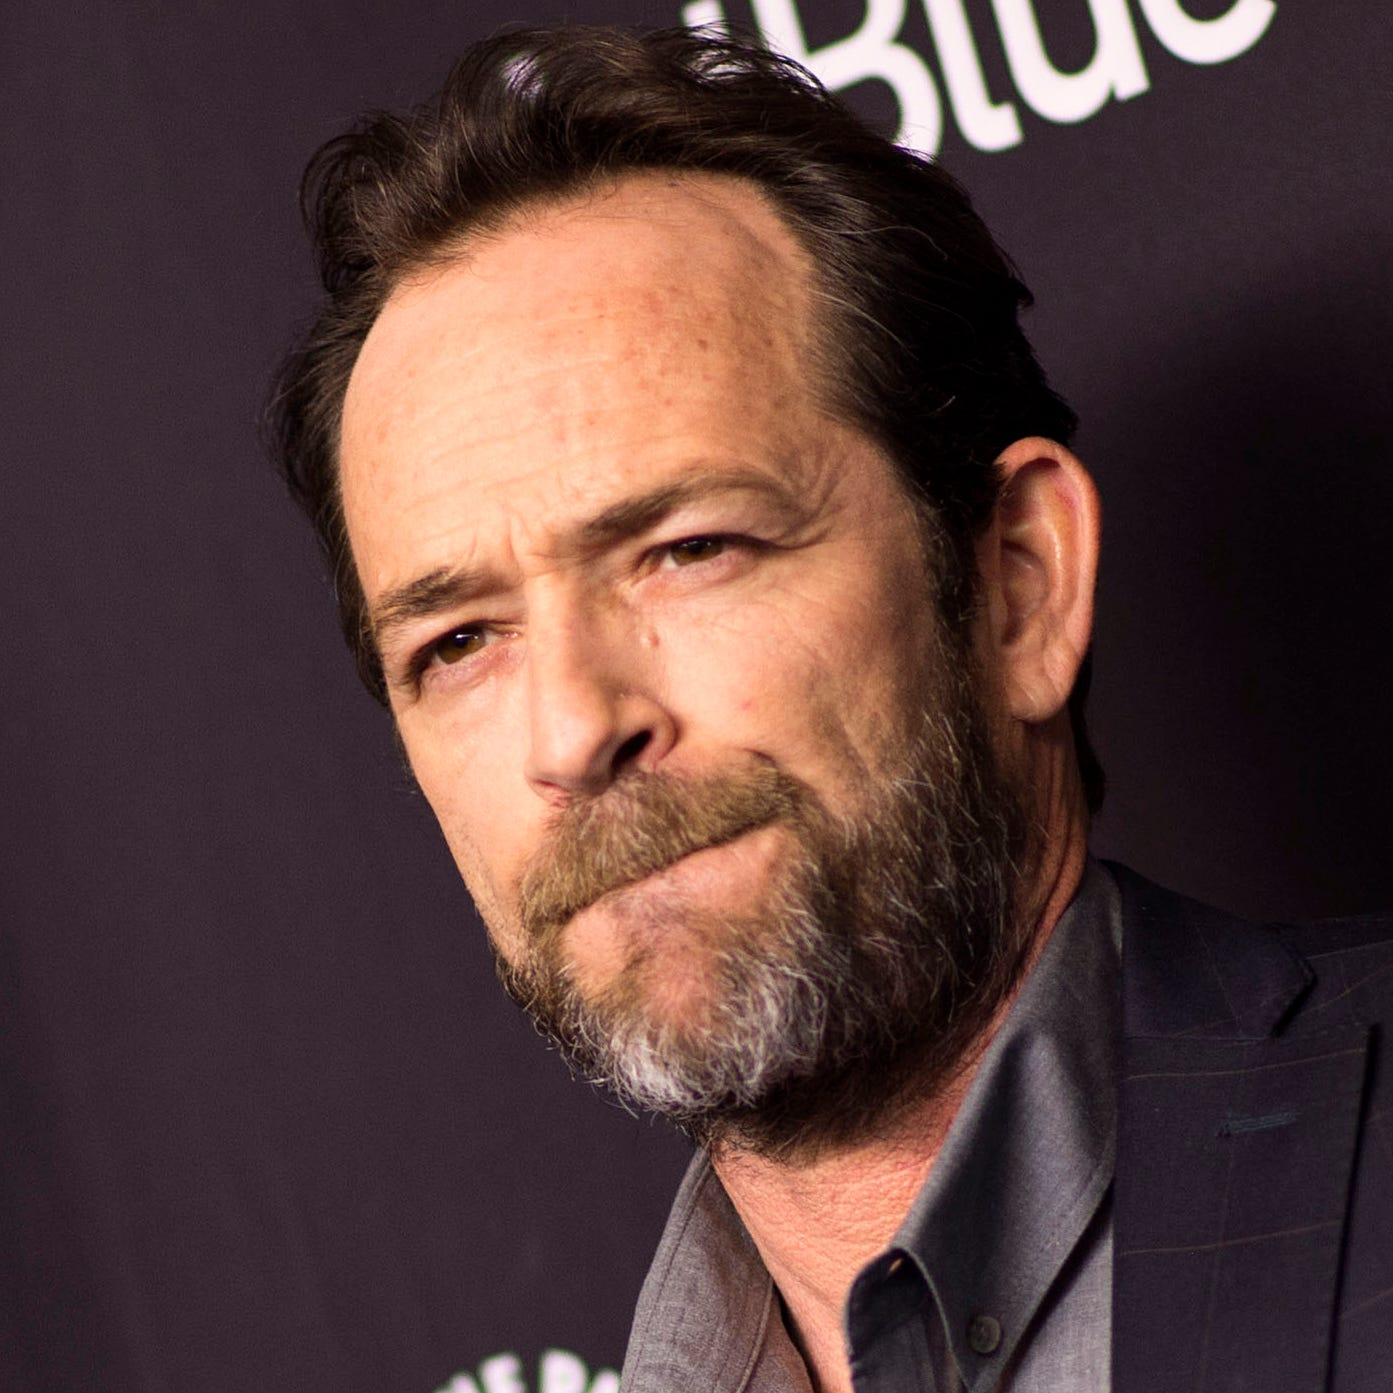 Luke Perry, '90210' heartthrob and 'Riverdale' star, dies at 52